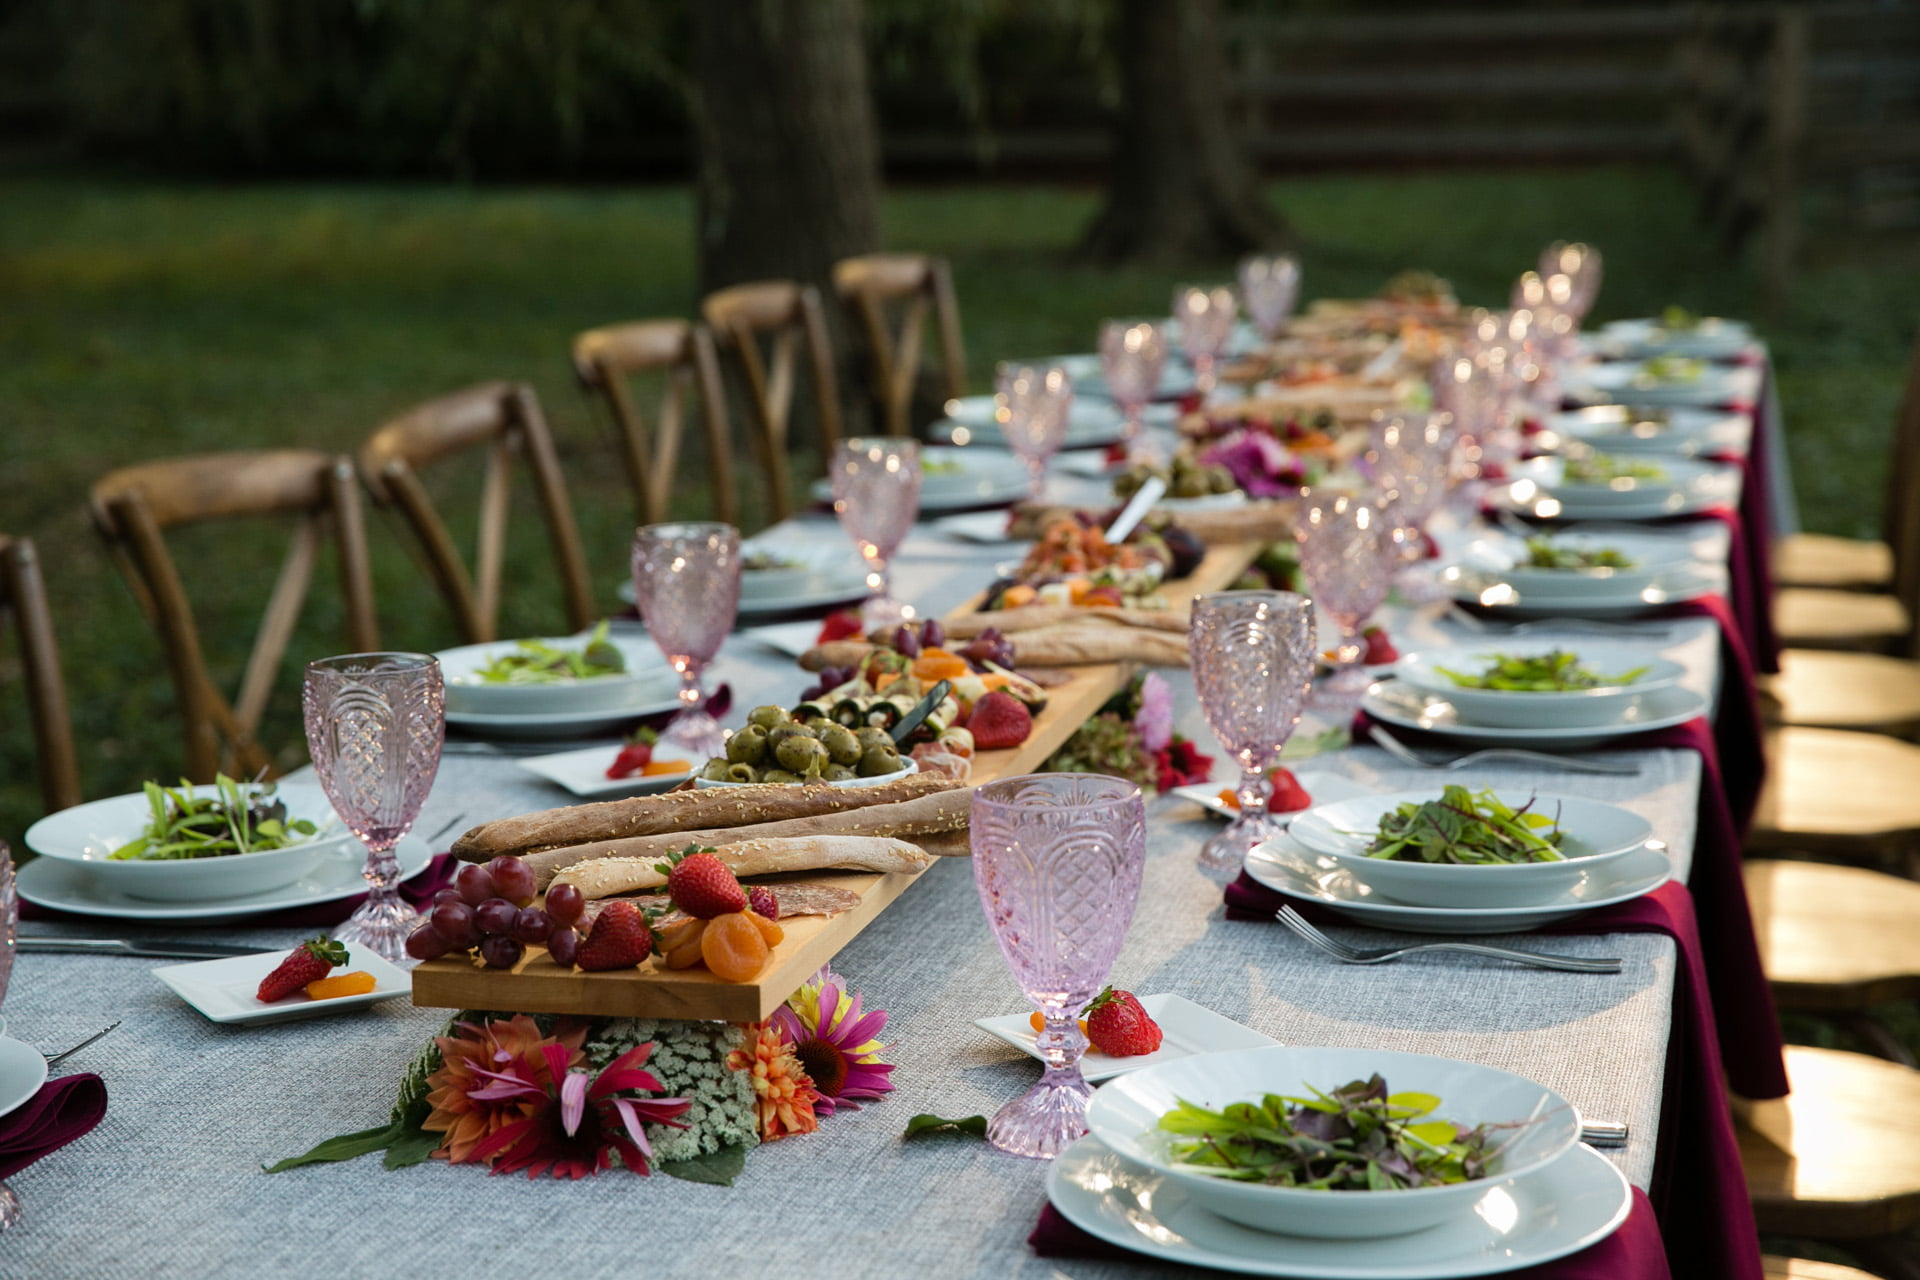 farm-dinner-table-with-food